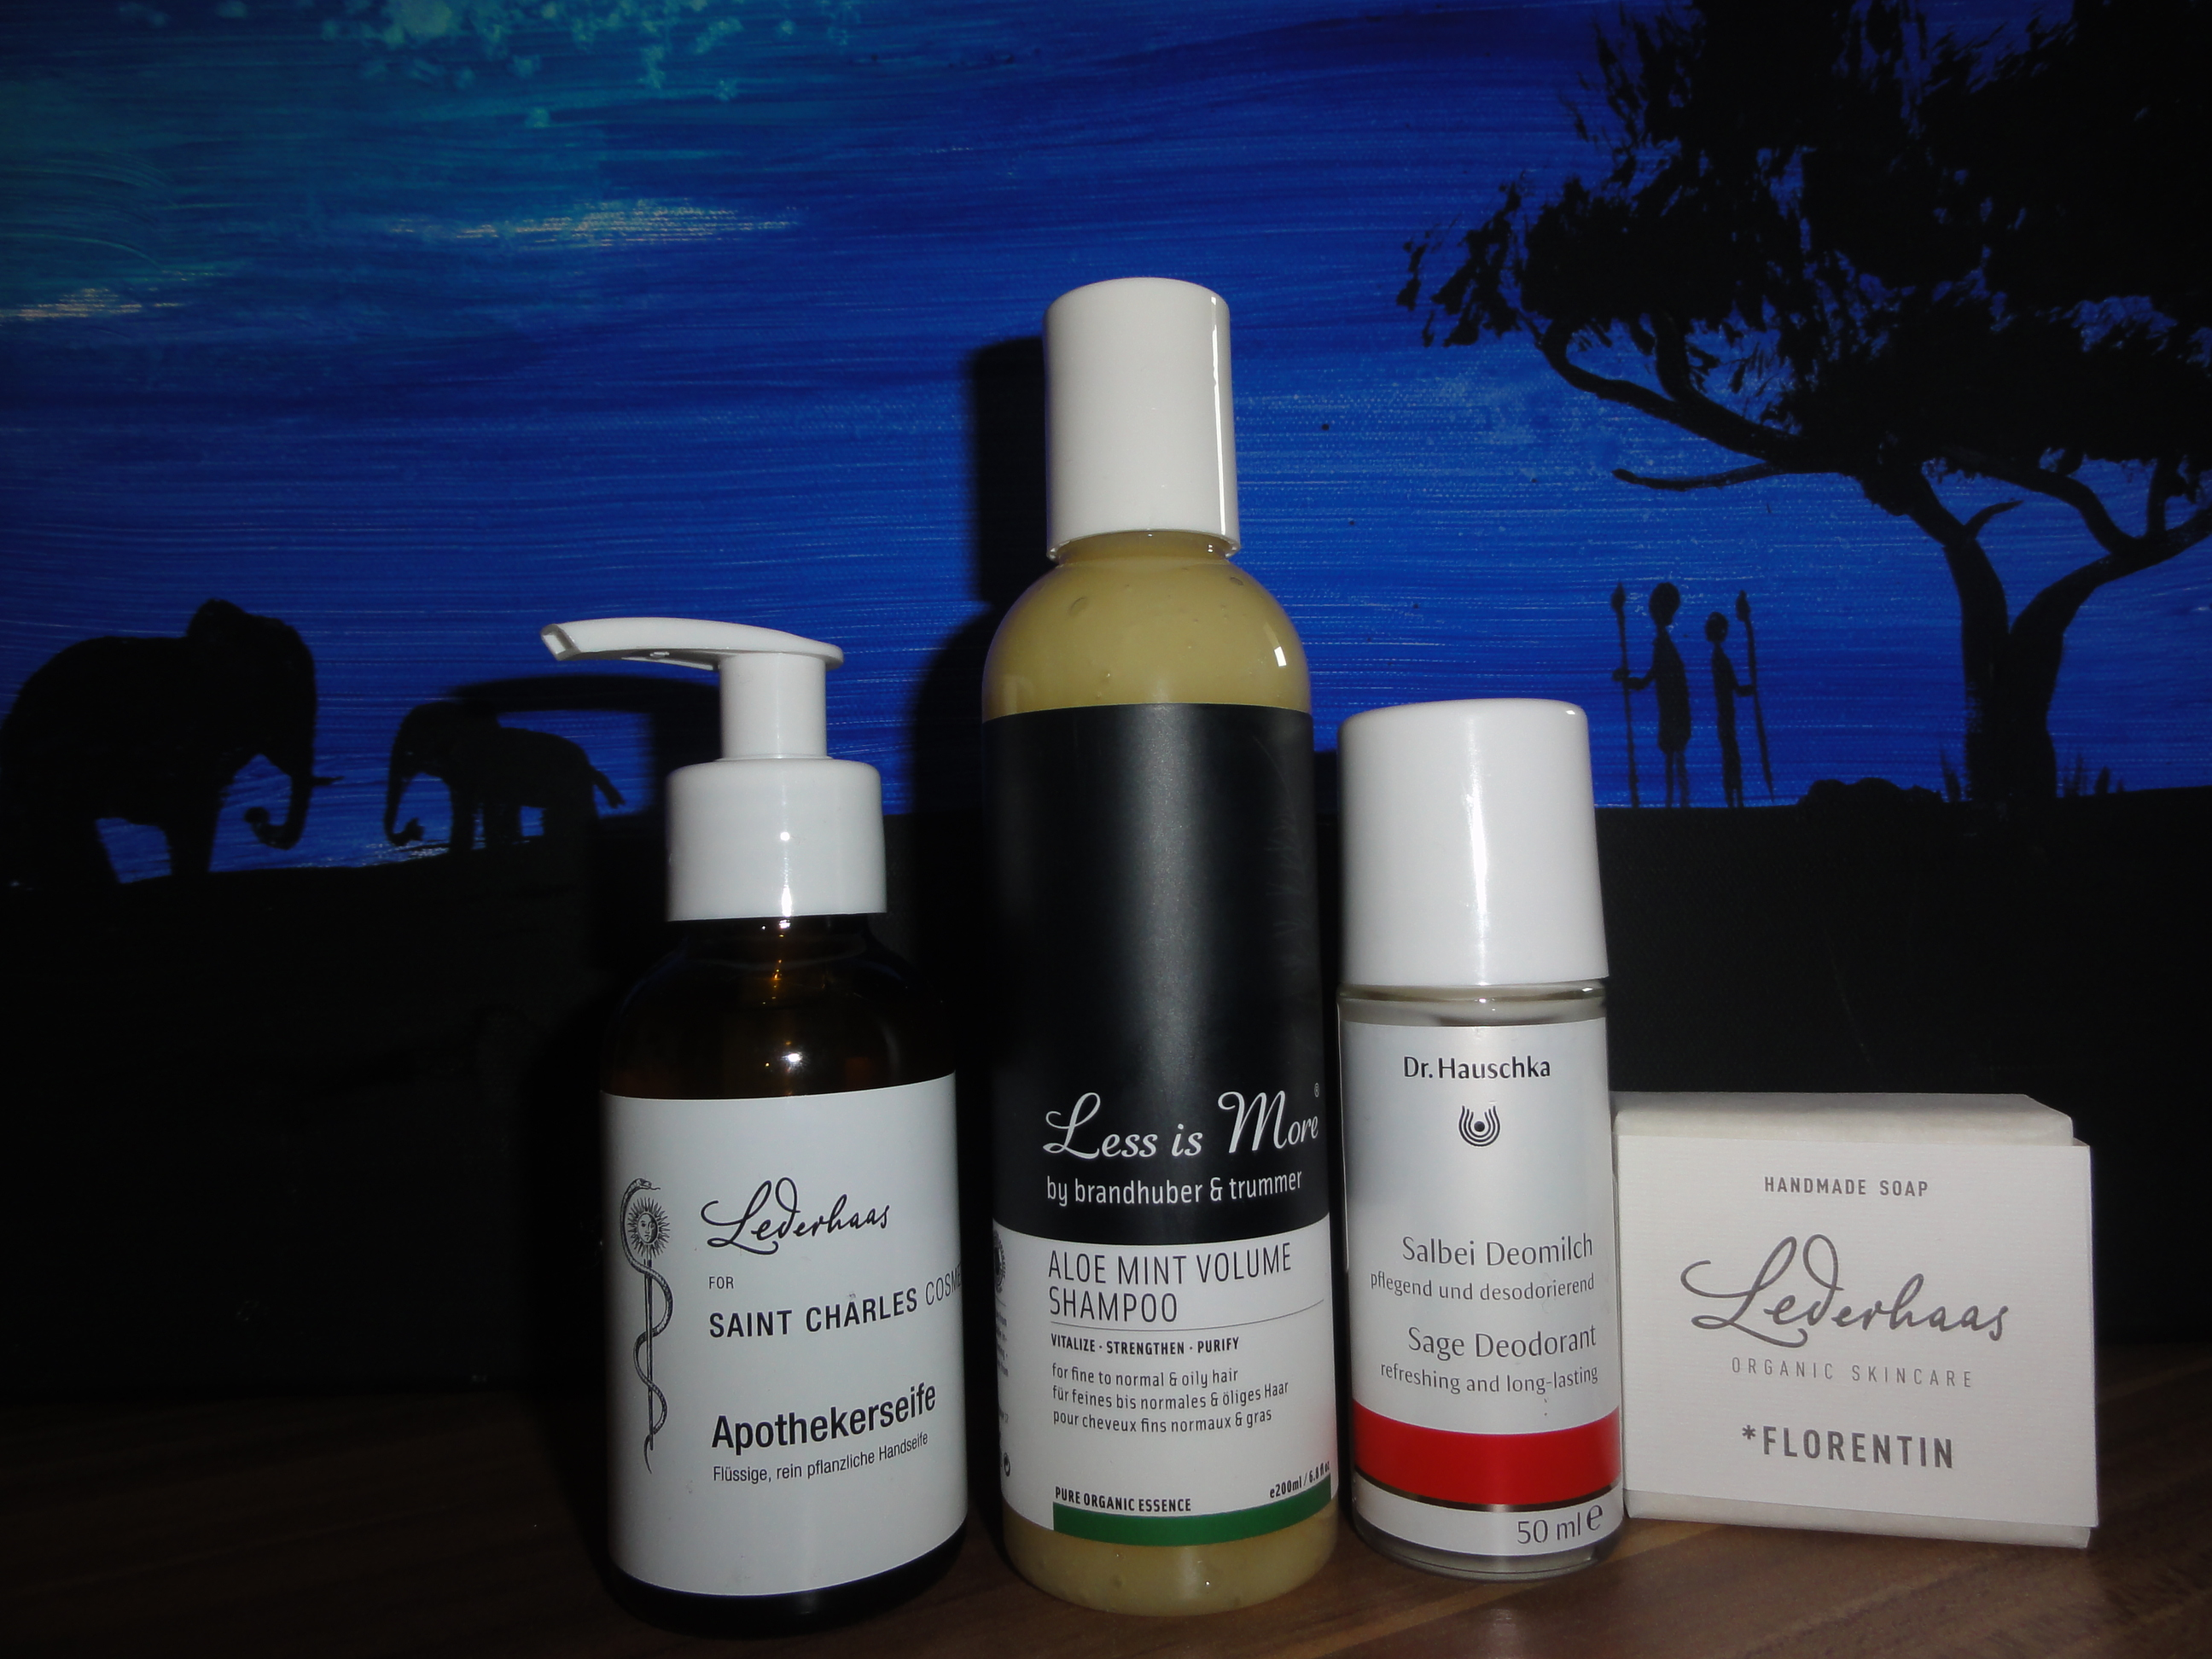 Ausbeute bei Saint Charles Cosmothecary